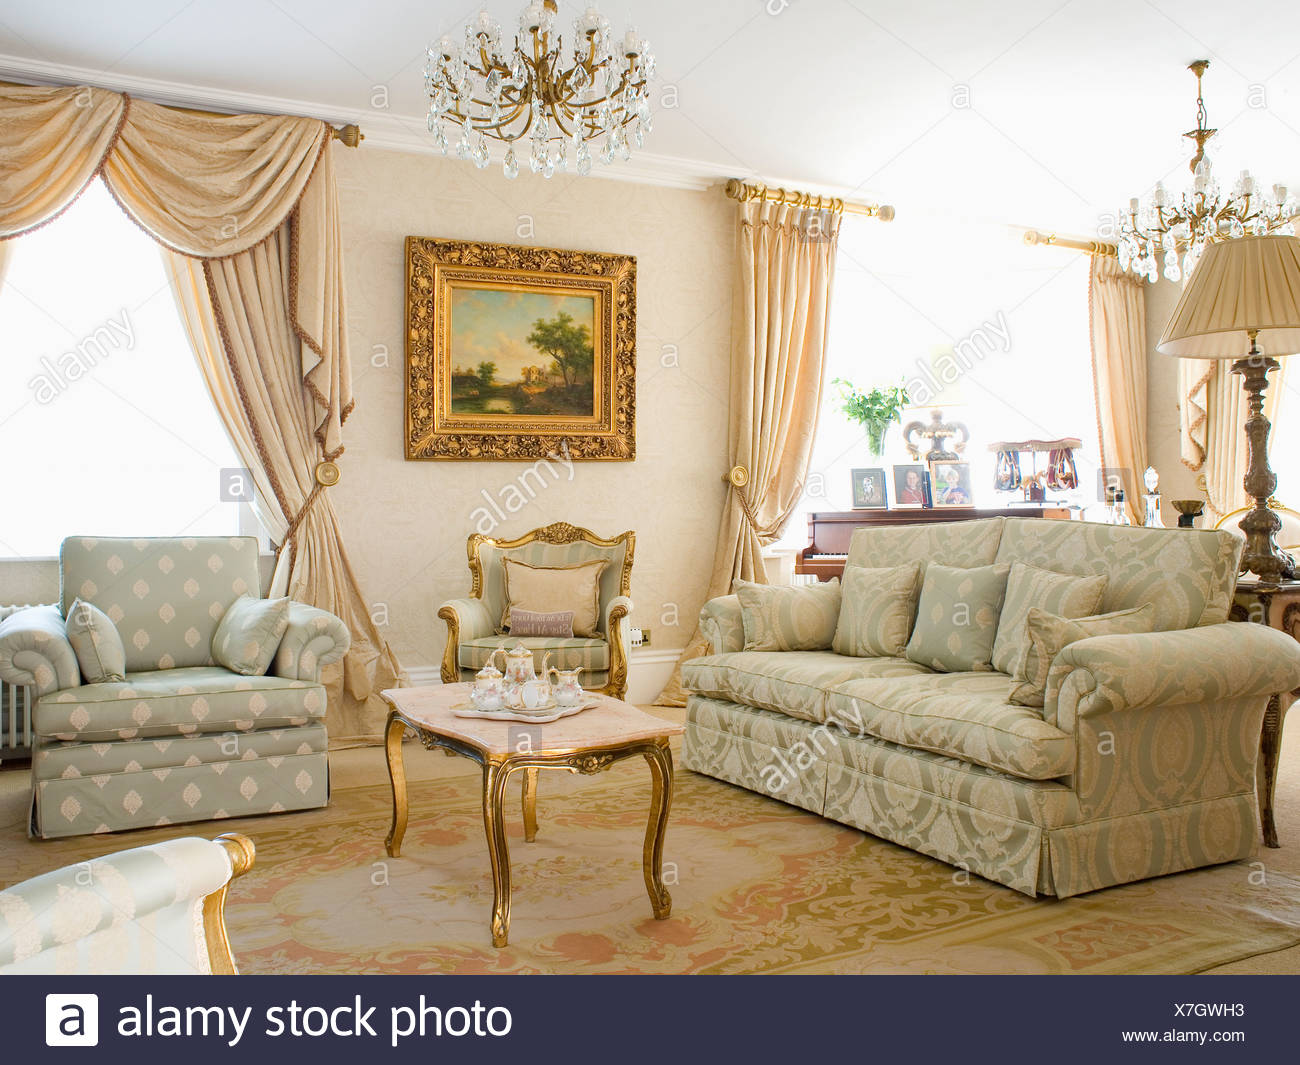 Opulent neutral country living room with damask sofa and patterned